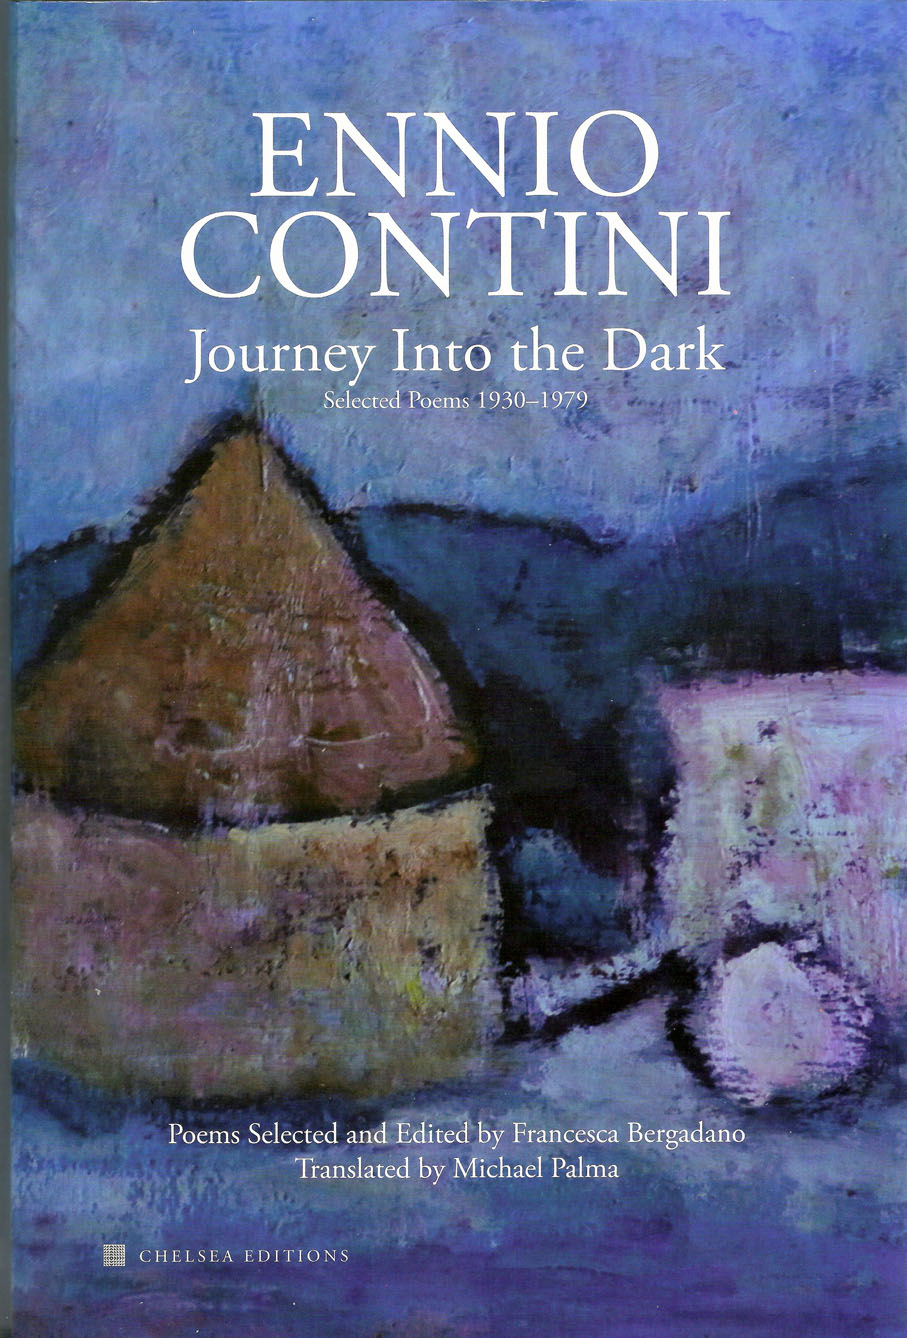 Journey Into the Dark: Selected Poems 1930-1979